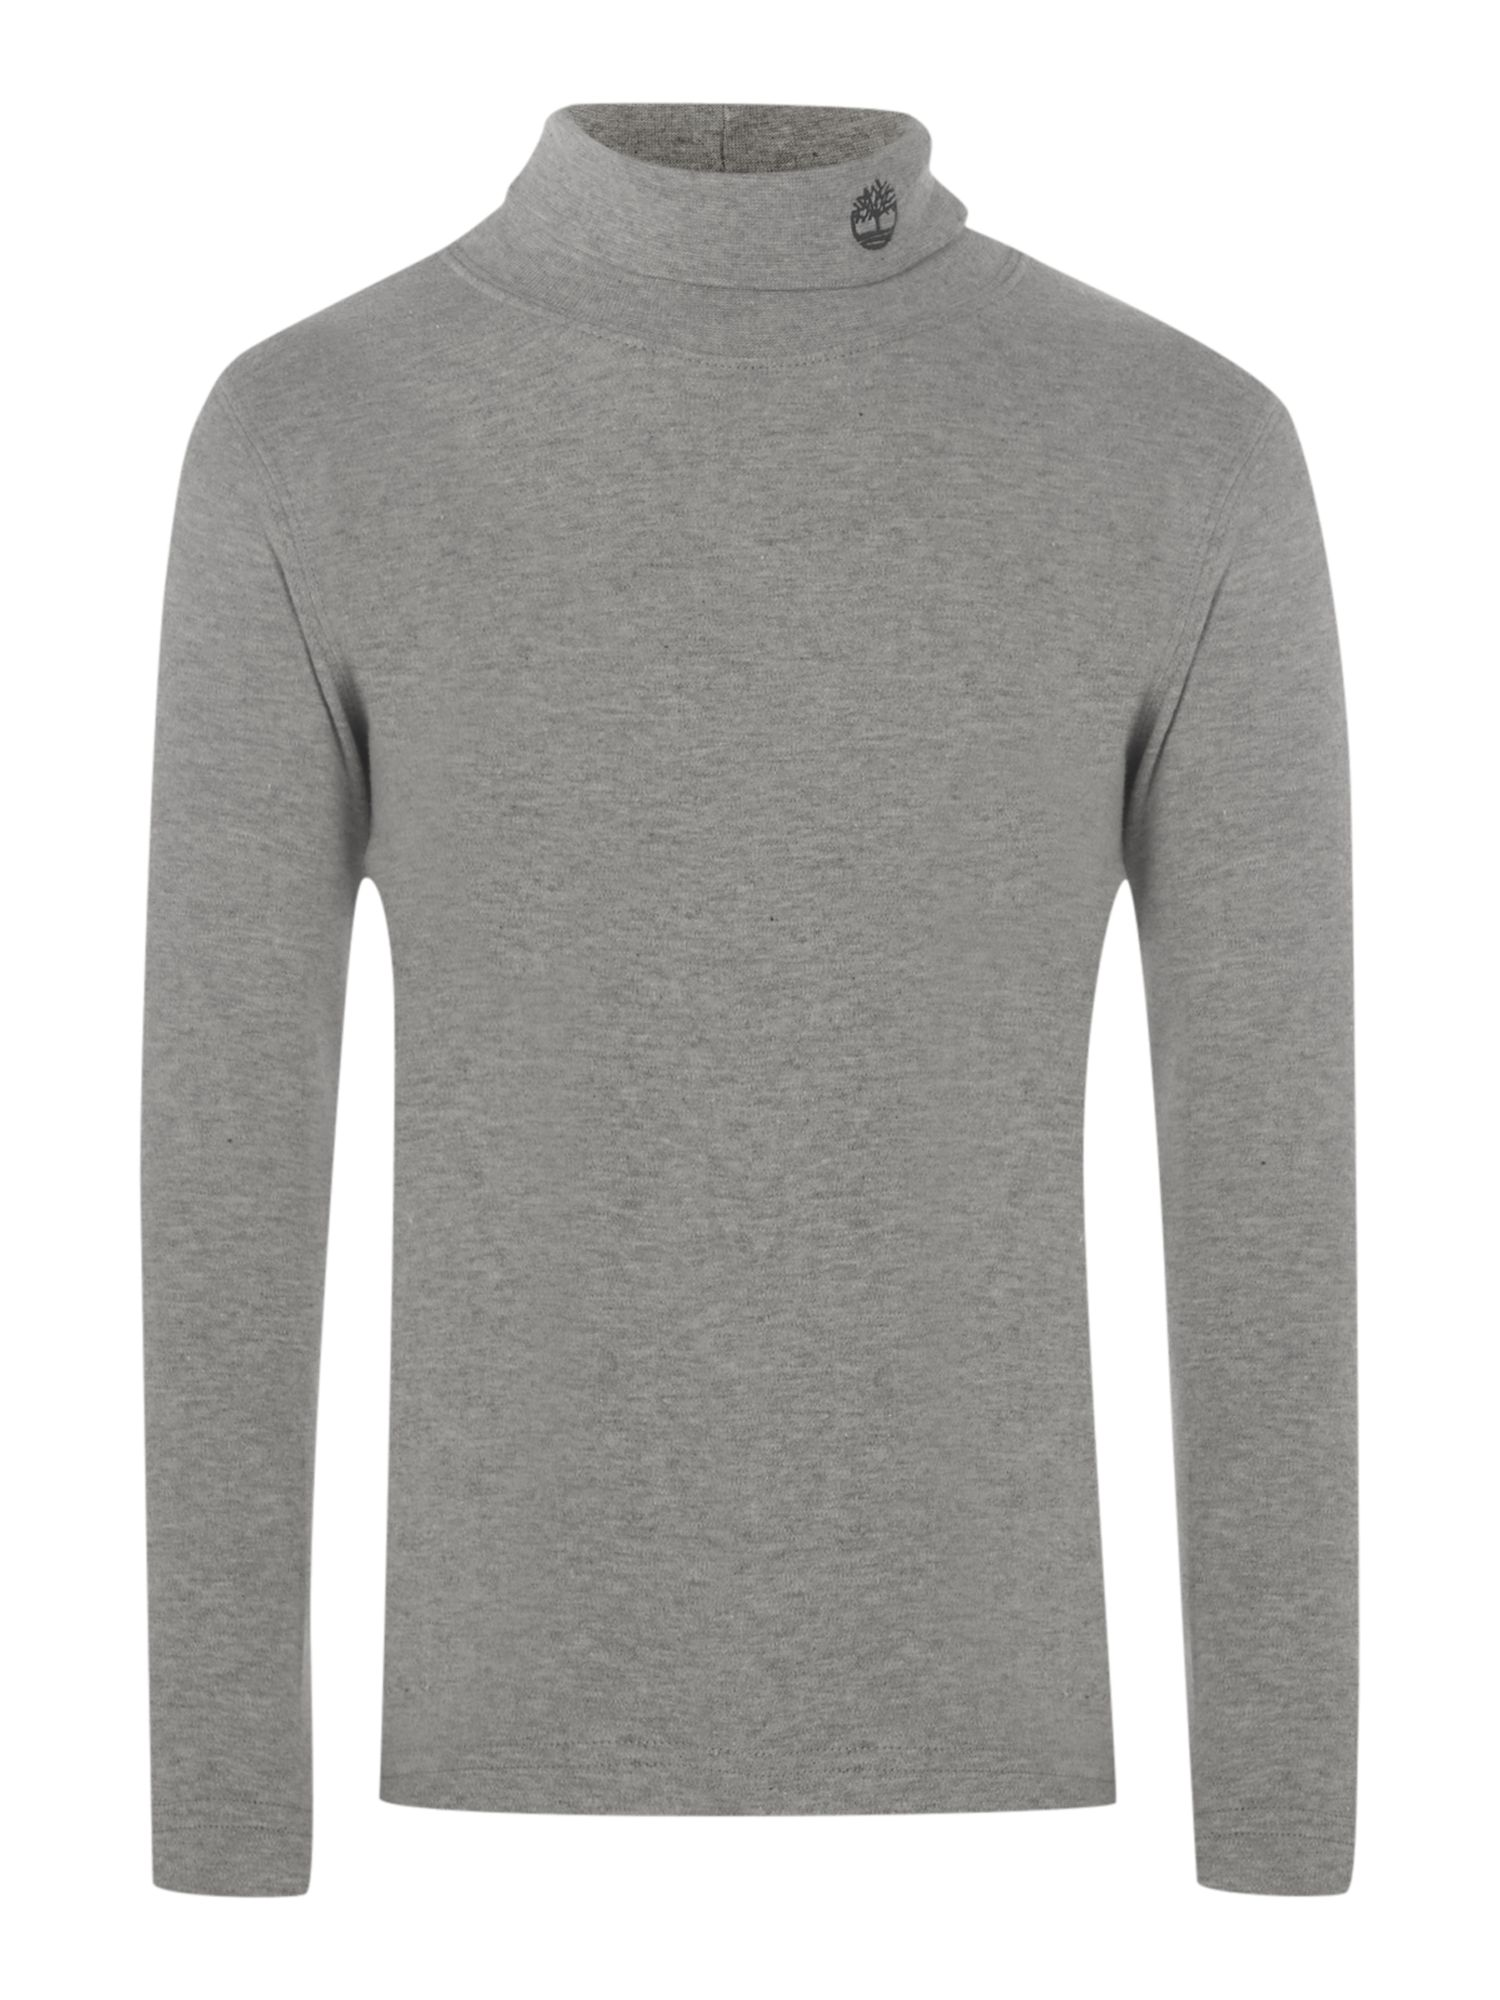 Boys jersey long sleeve turtleneck